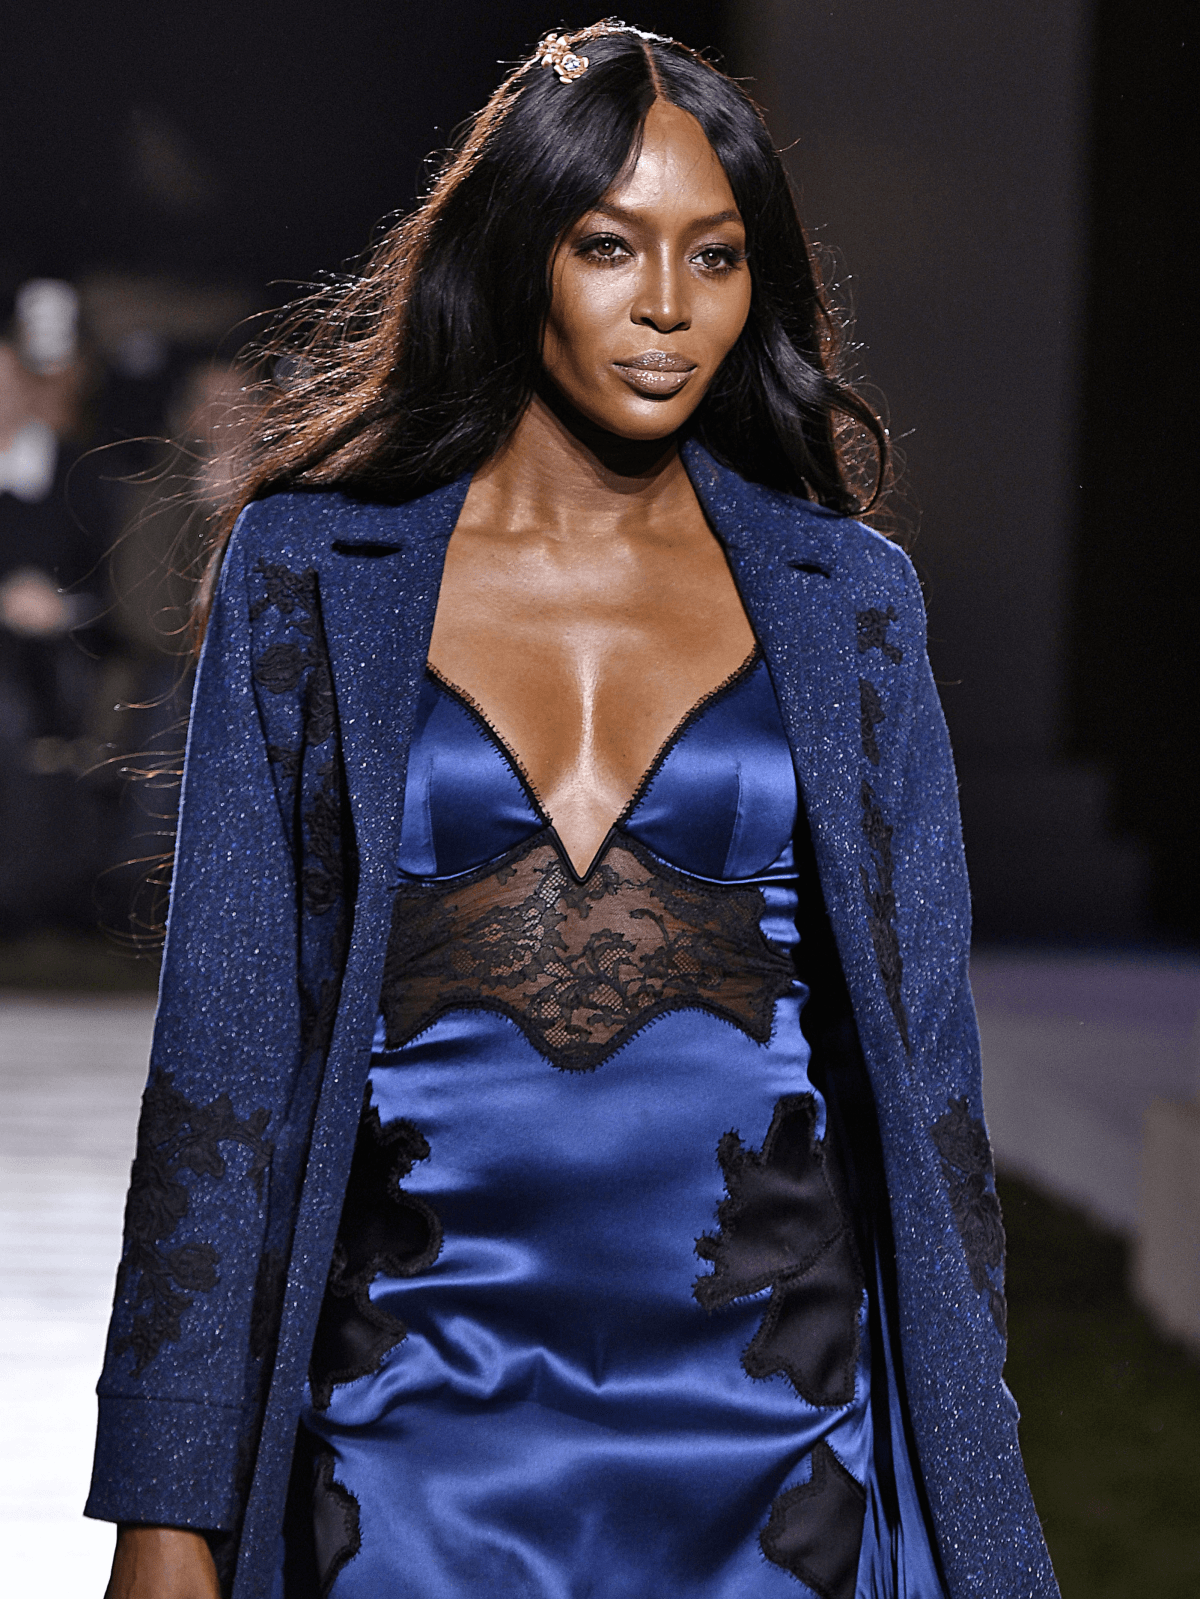 Houston, NYFW La Perla, Feb 2017, Naomi Campbell in navy slip dress